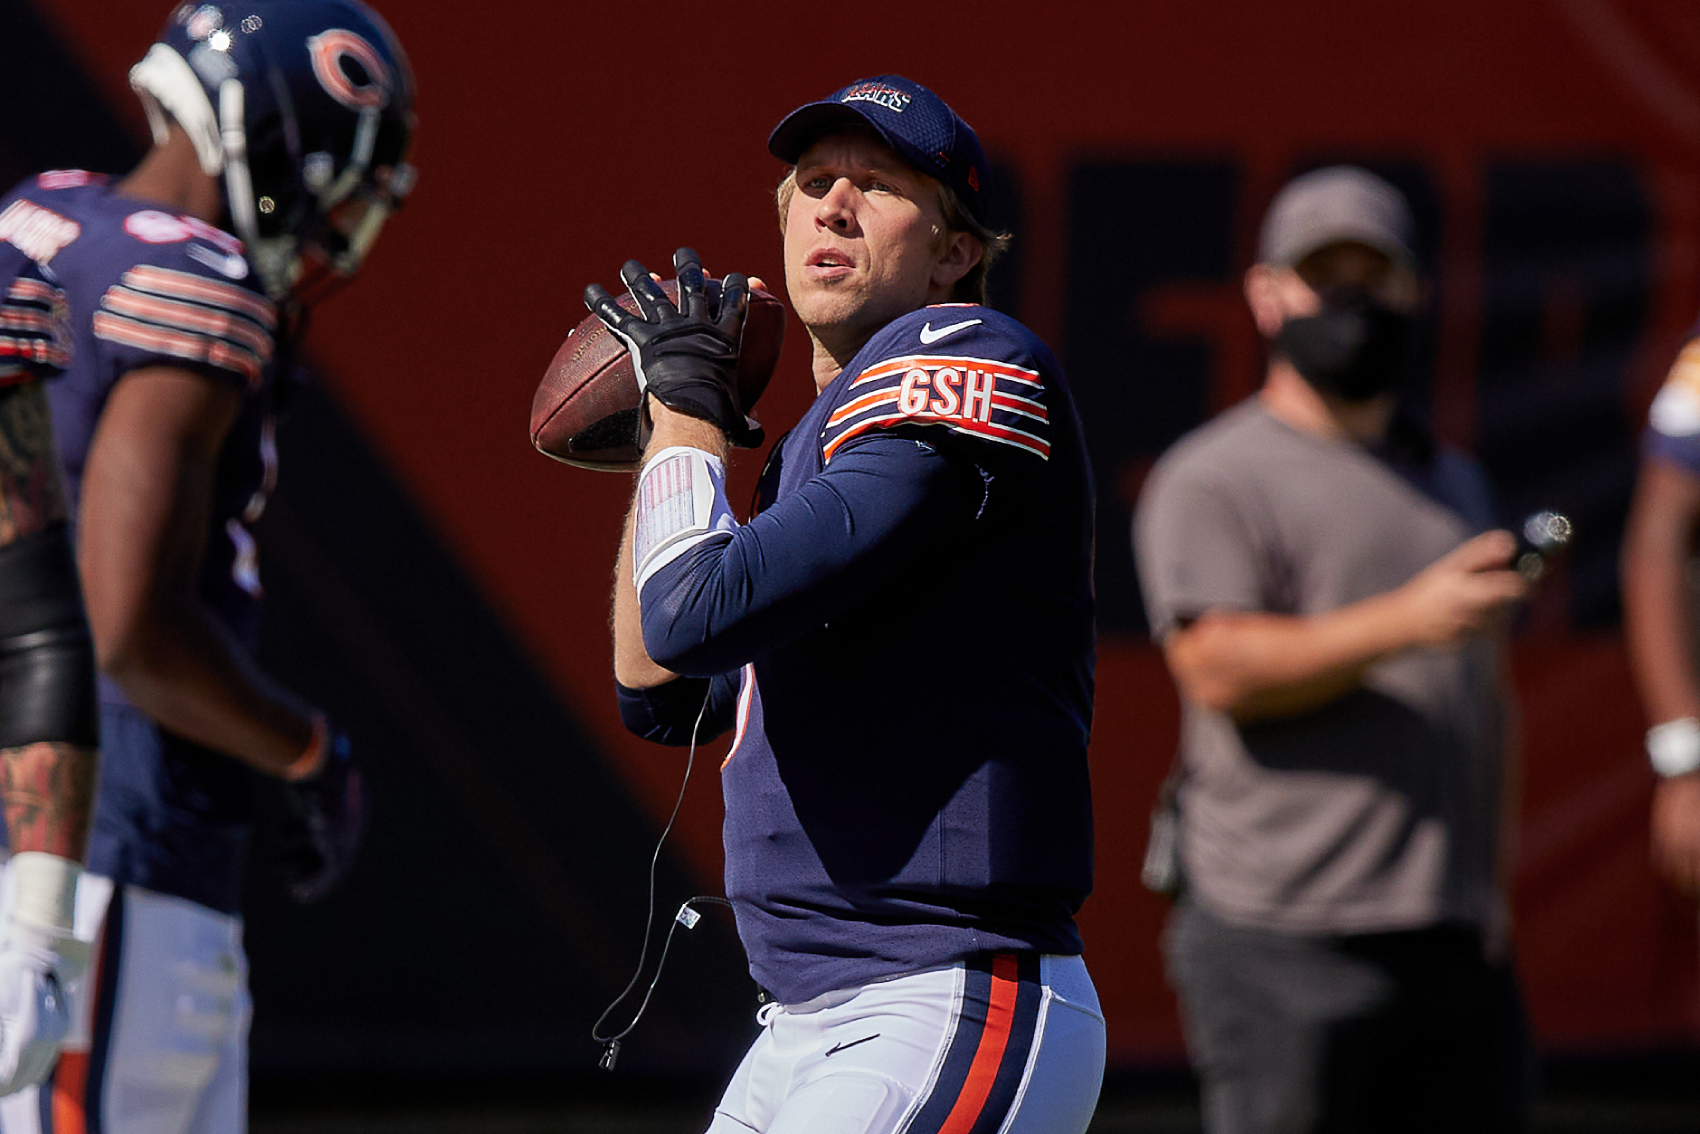 Nicks Foles is starting for the Chicago Bears in Week 4. However, the Bears are choosing to start him at the absolute worst possible time.